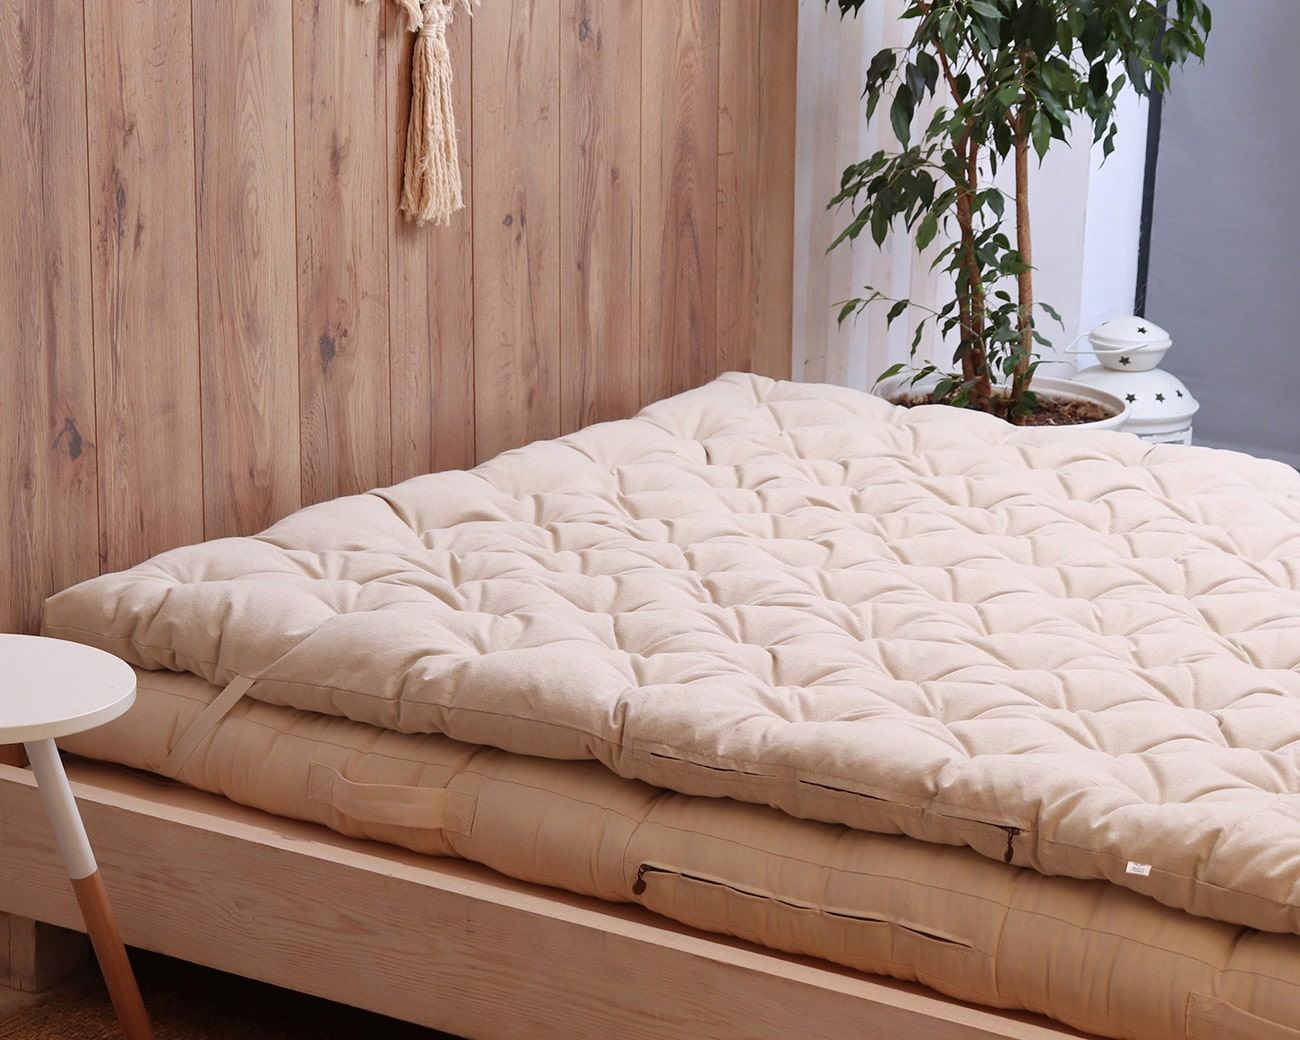 Wool Mattress Topper With Stitched Fabric Home Of Wool All Natural Handmade Mattresses